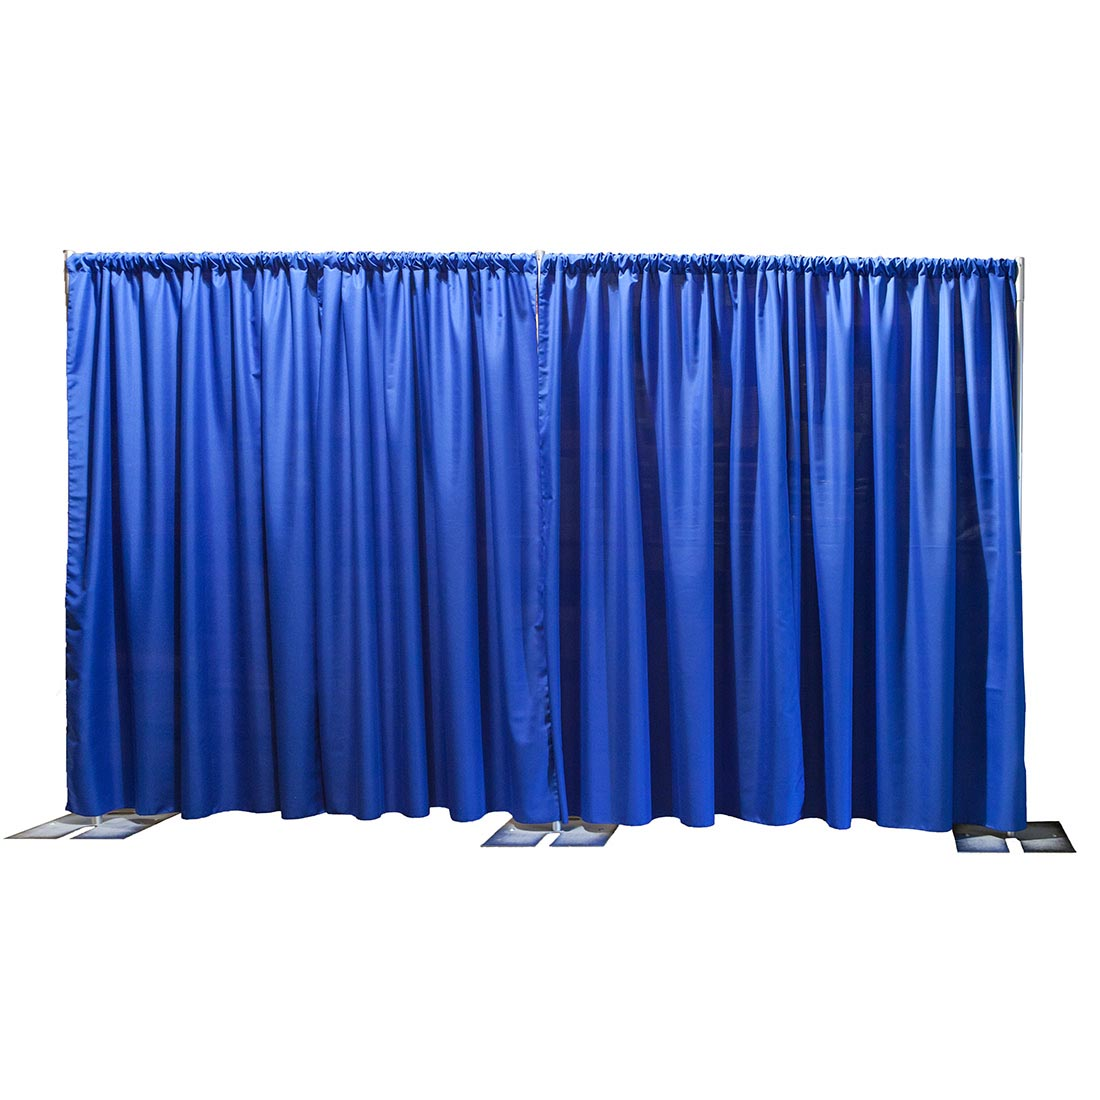 tags michigan image curtain size stupendous and eei drape online kit pipe concept drapes rentals of draperies panel charlotte panels nc tag full shocking designscurtains